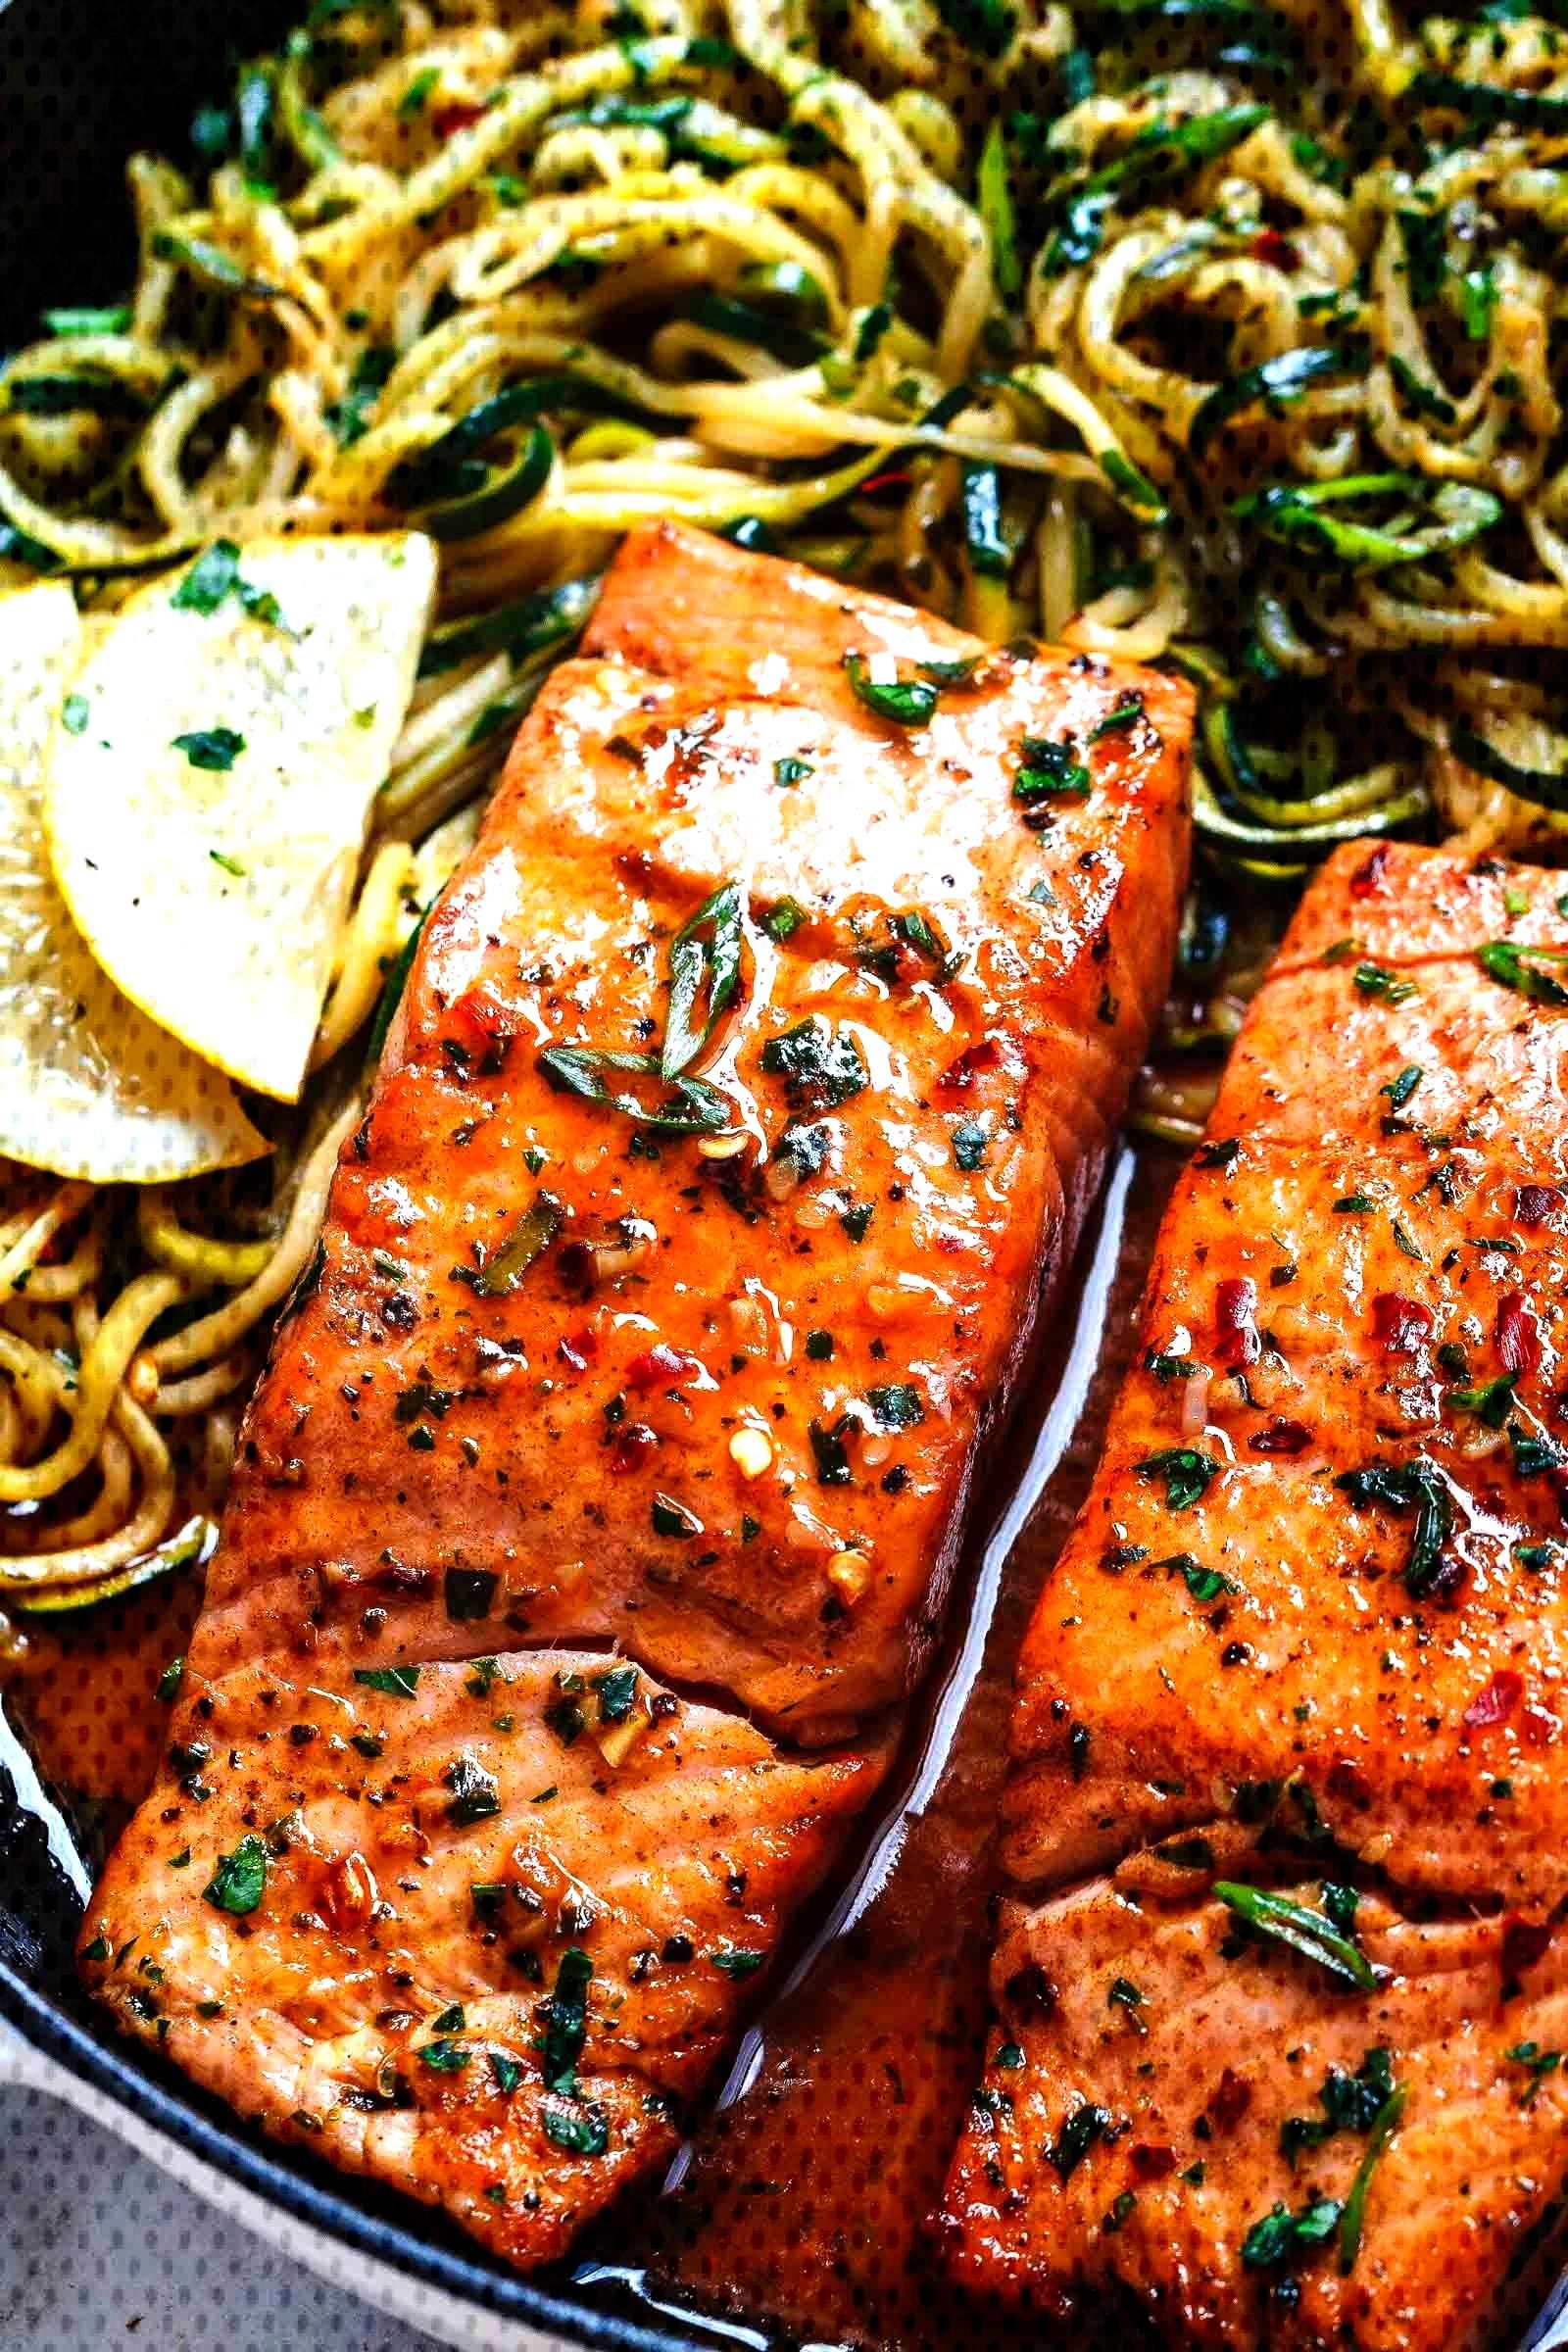 Lemon Garlic Butter Salmon with Zucchini Noodles - Lemon Garlic Butter Salmon with Zucchini Noodle